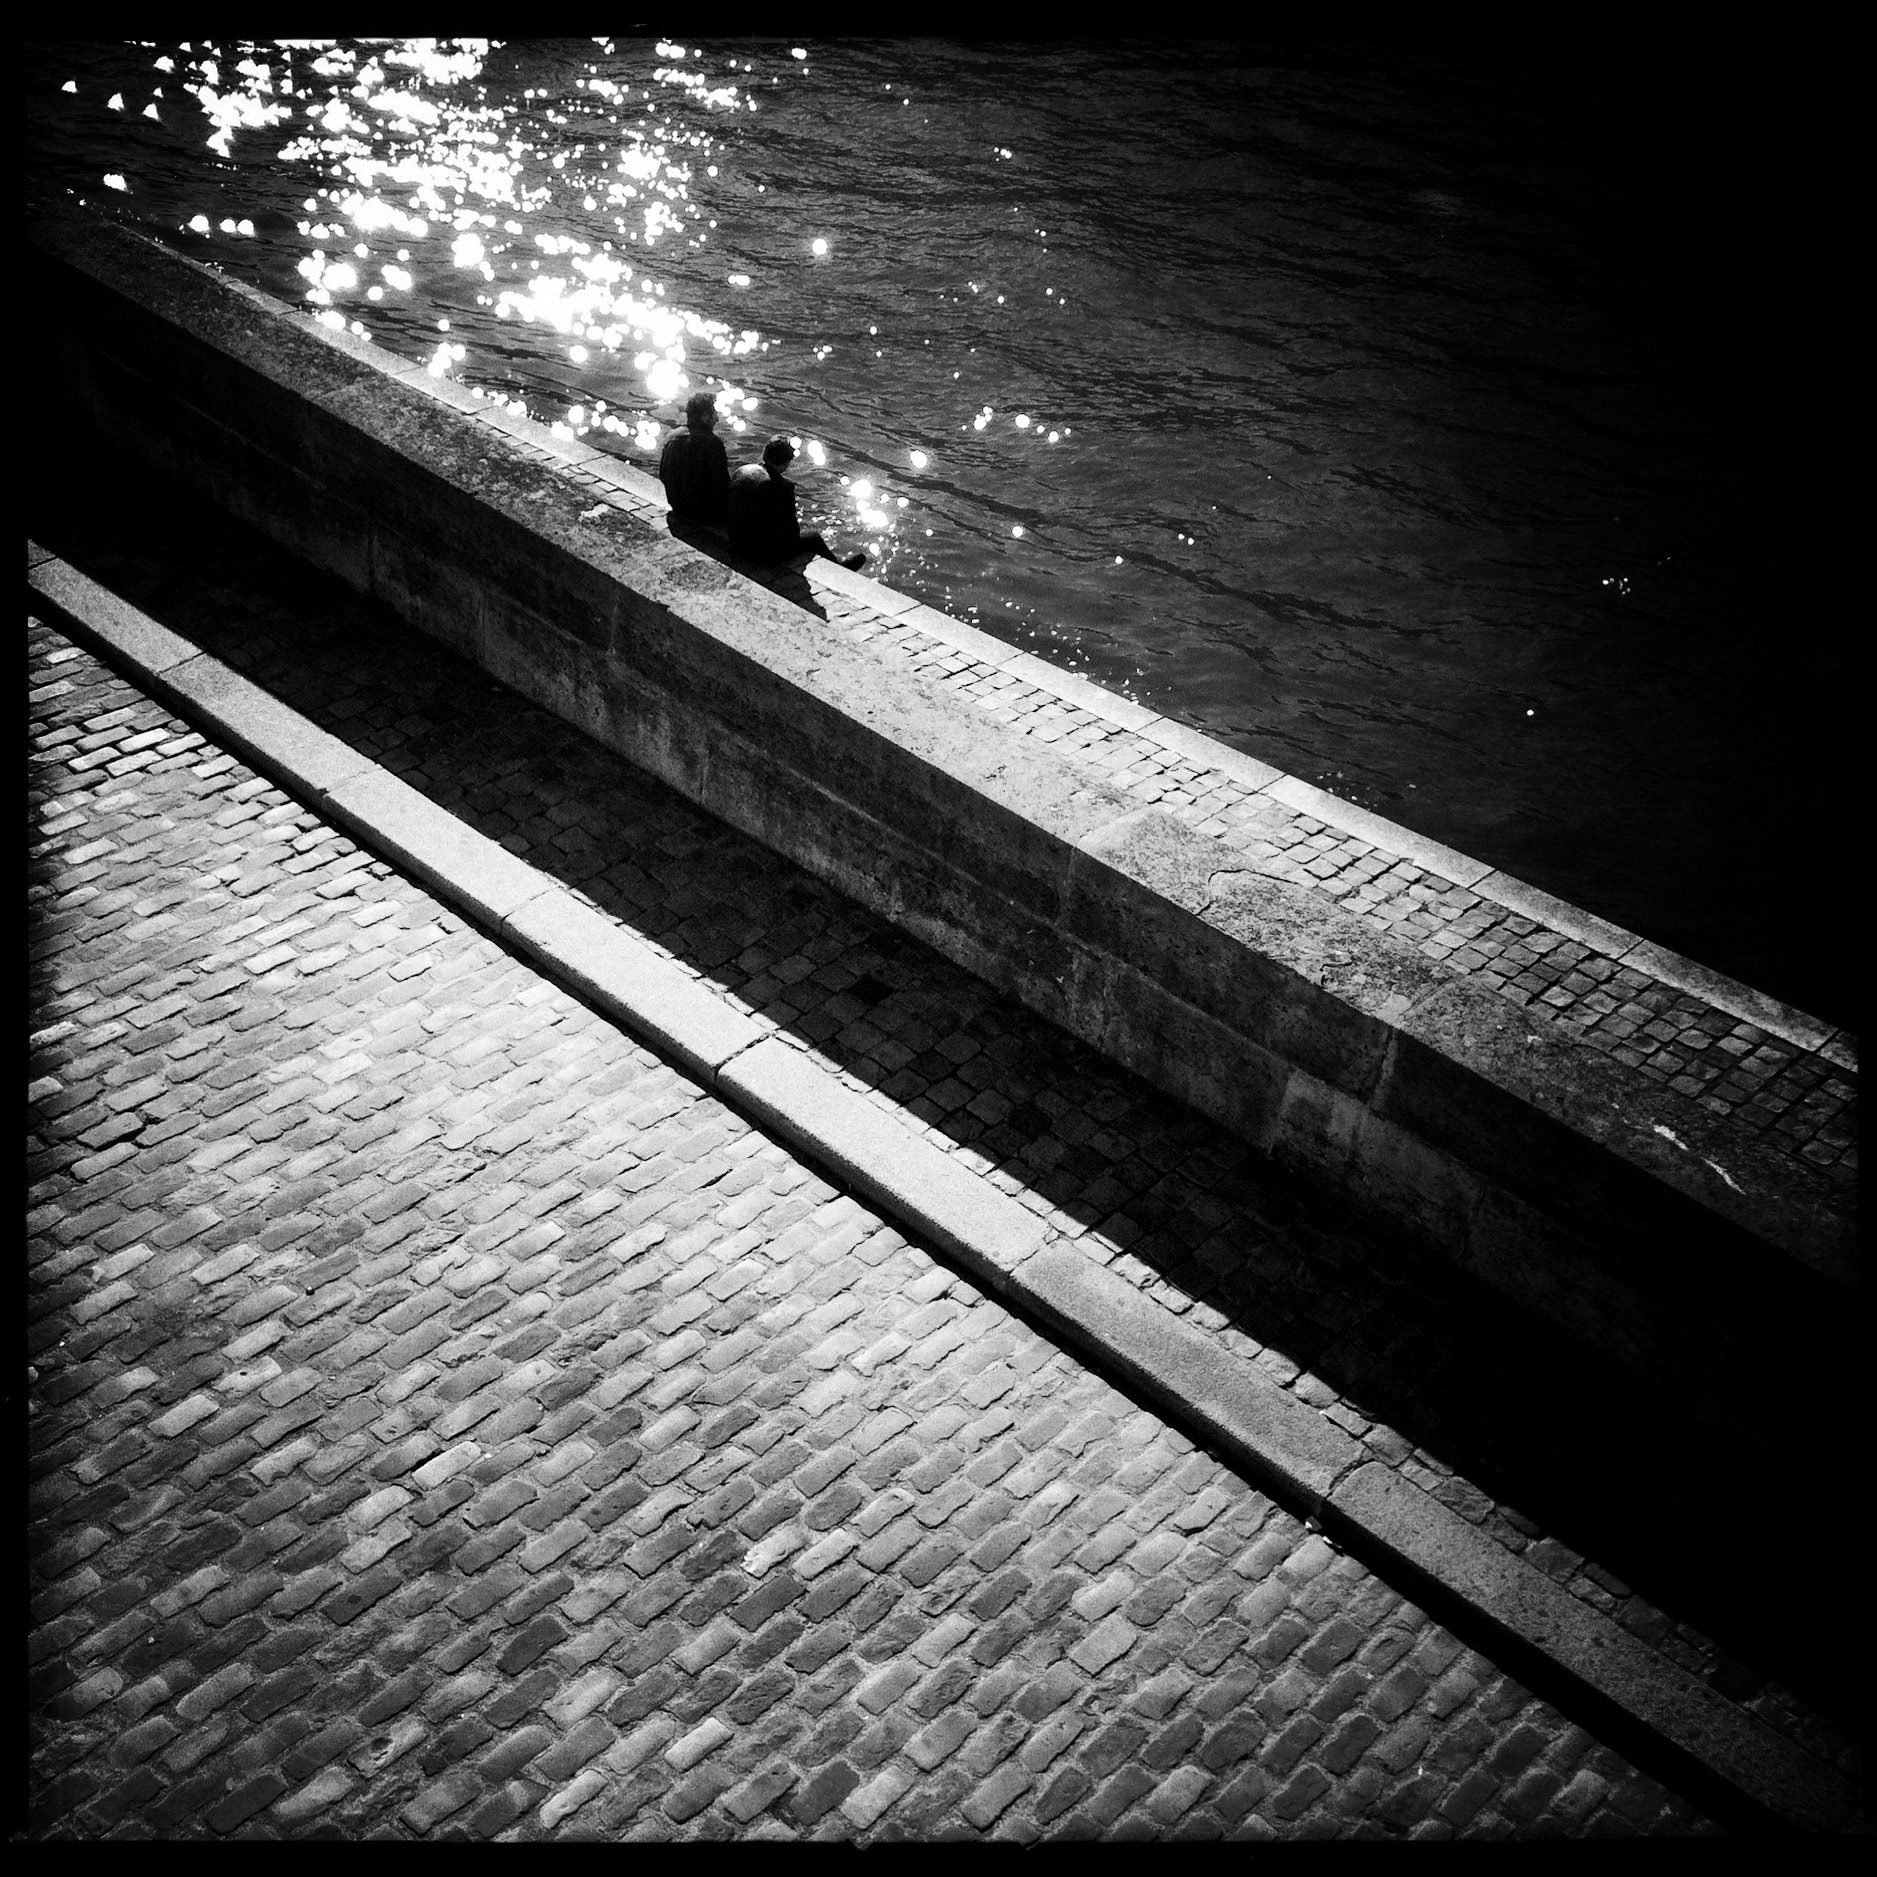 Photograph Confessions on the Seine. by Giulio Giacconi on 500px